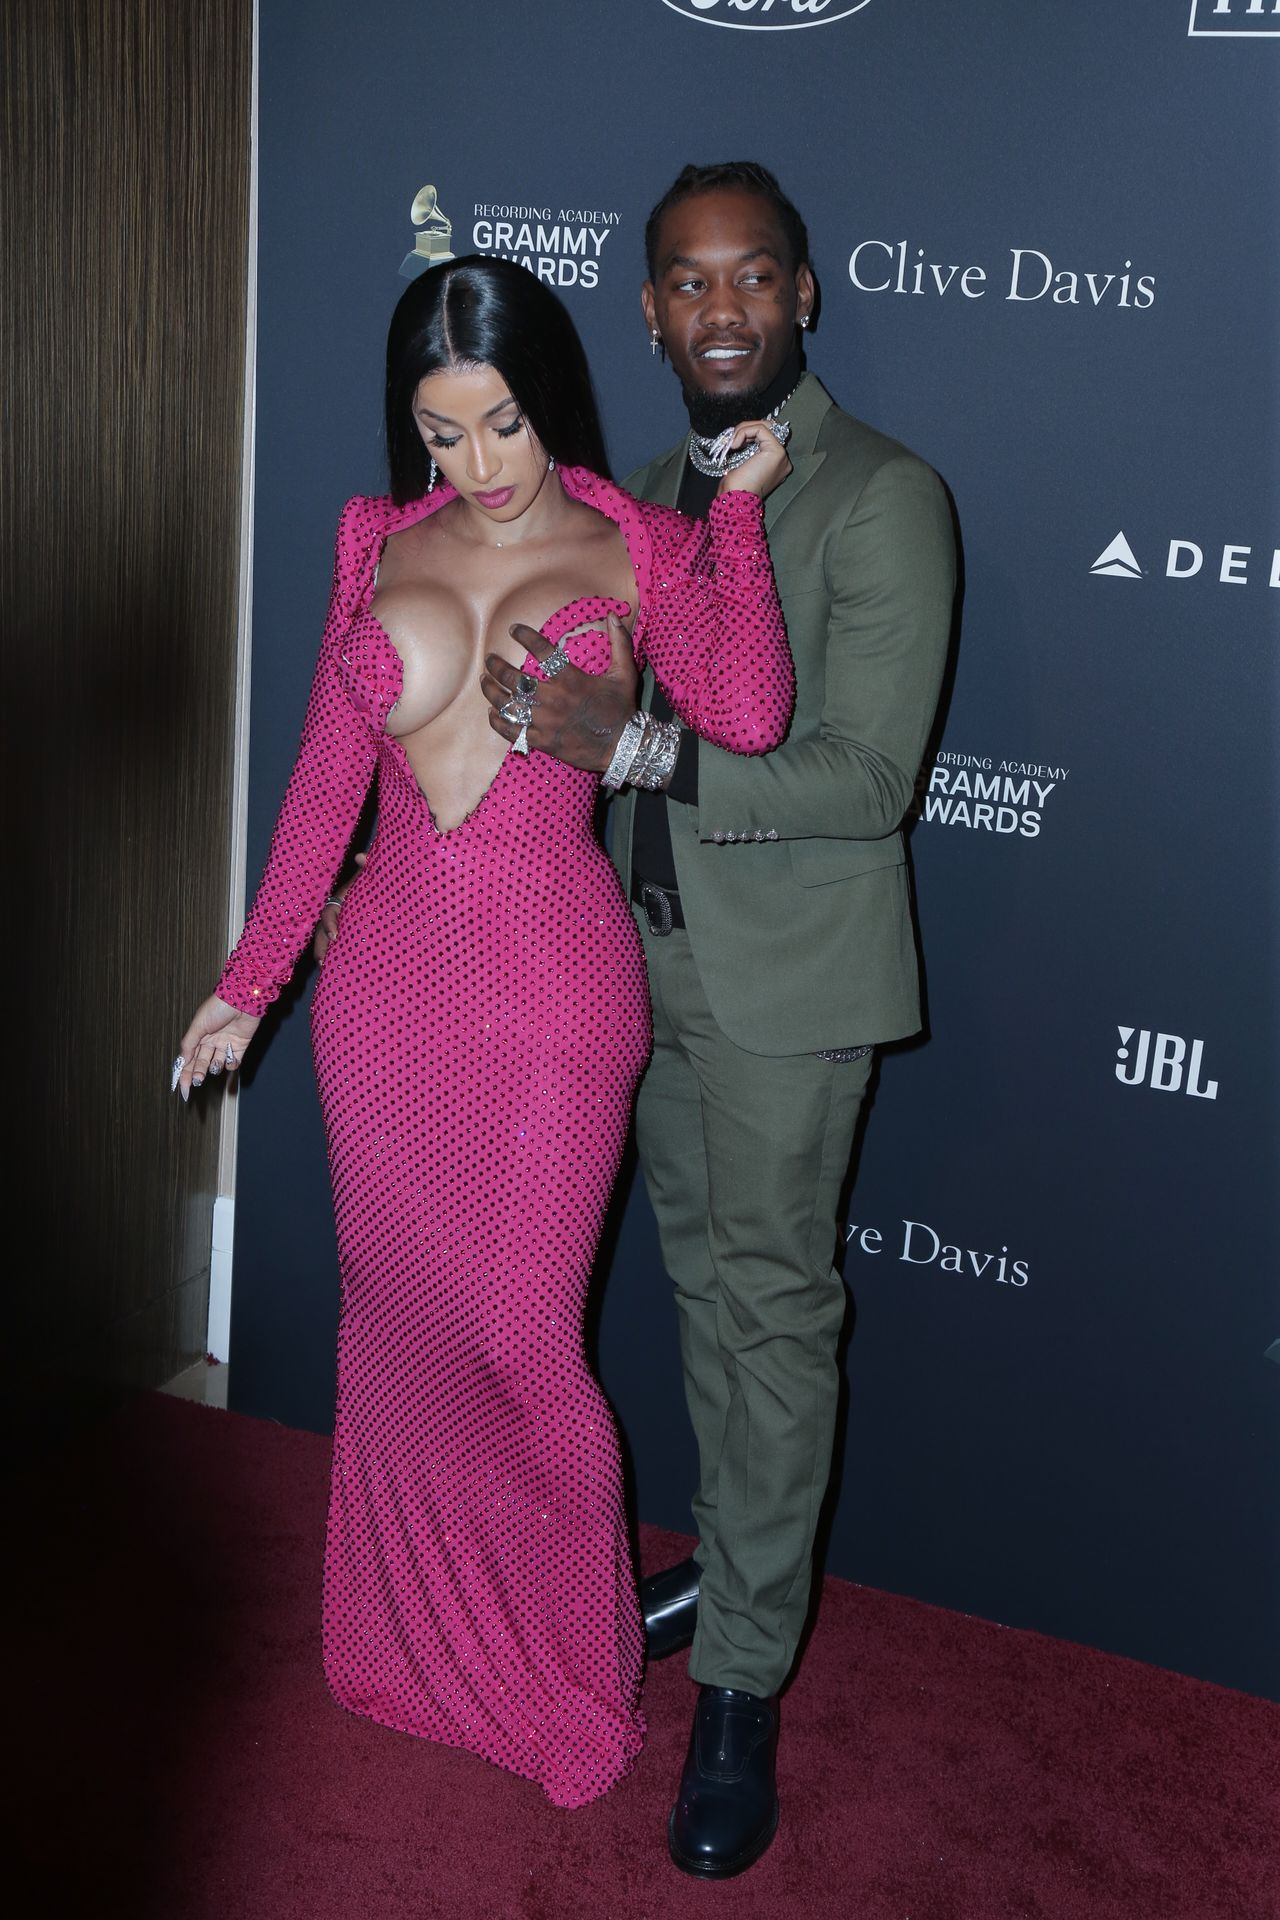 Offset Covers Cardi B's Boobs To Avoid Wardrobe Malfunction At Clive Davis Pre Grammy Party 0112